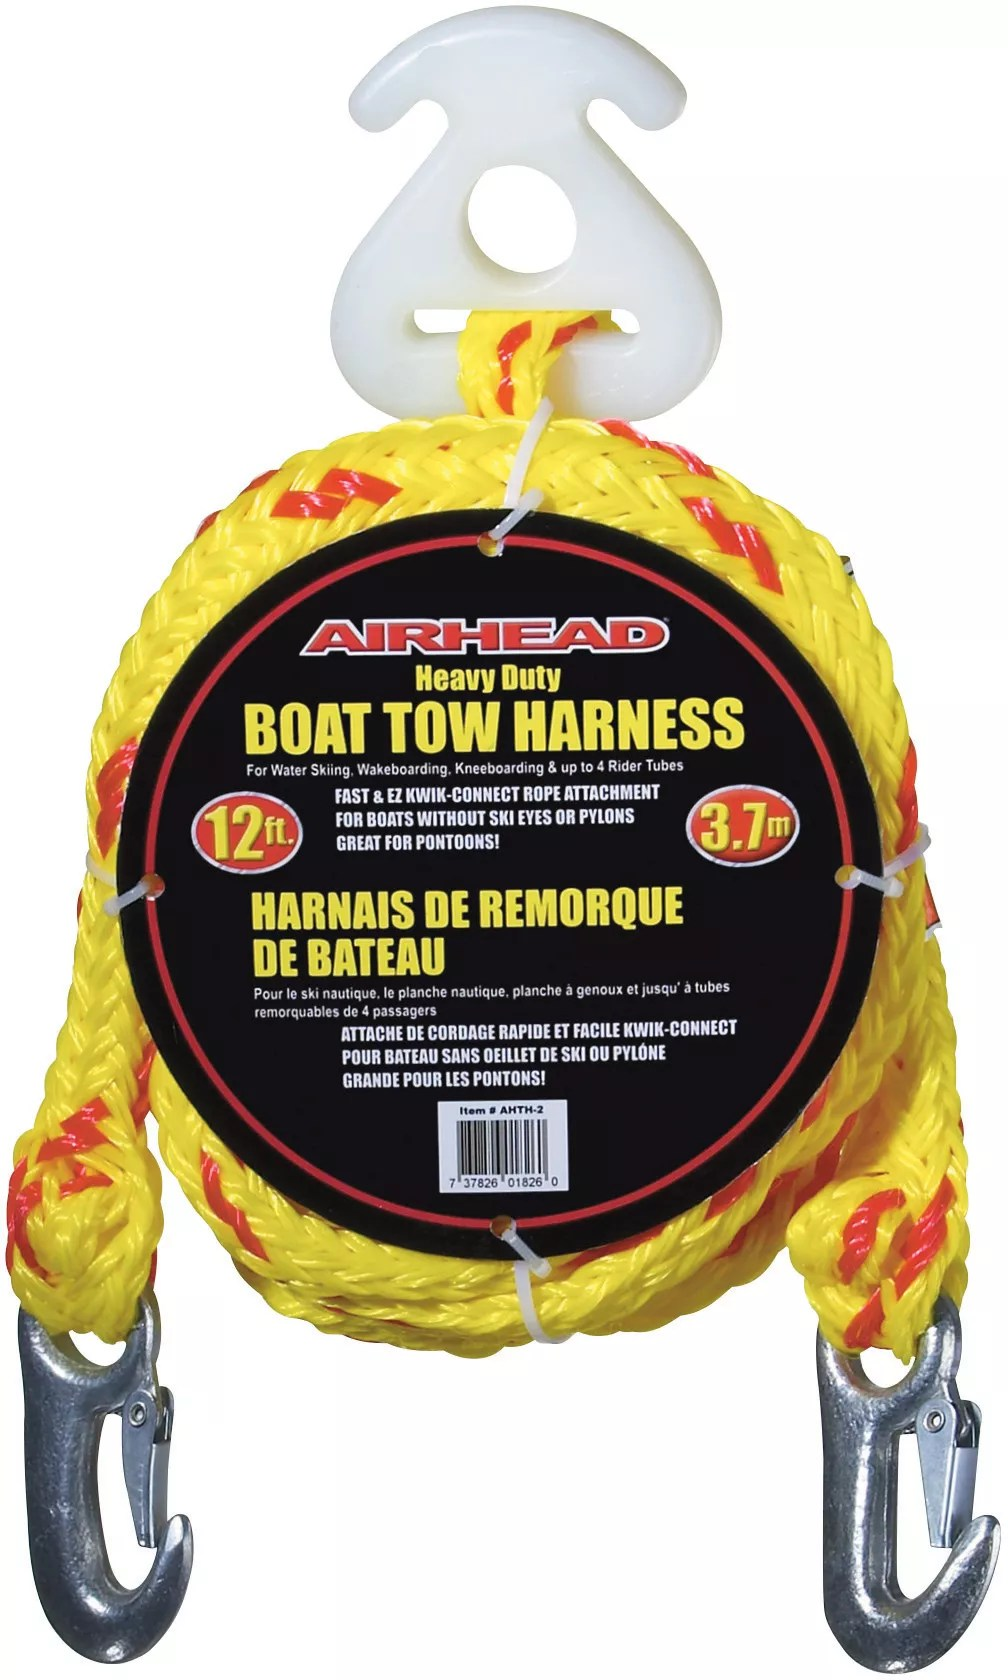 airhead heavy duty tow harness dick s sporting goods airhead boat tow harness airhead heavy duty tow [ 1008 x 1680 Pixel ]